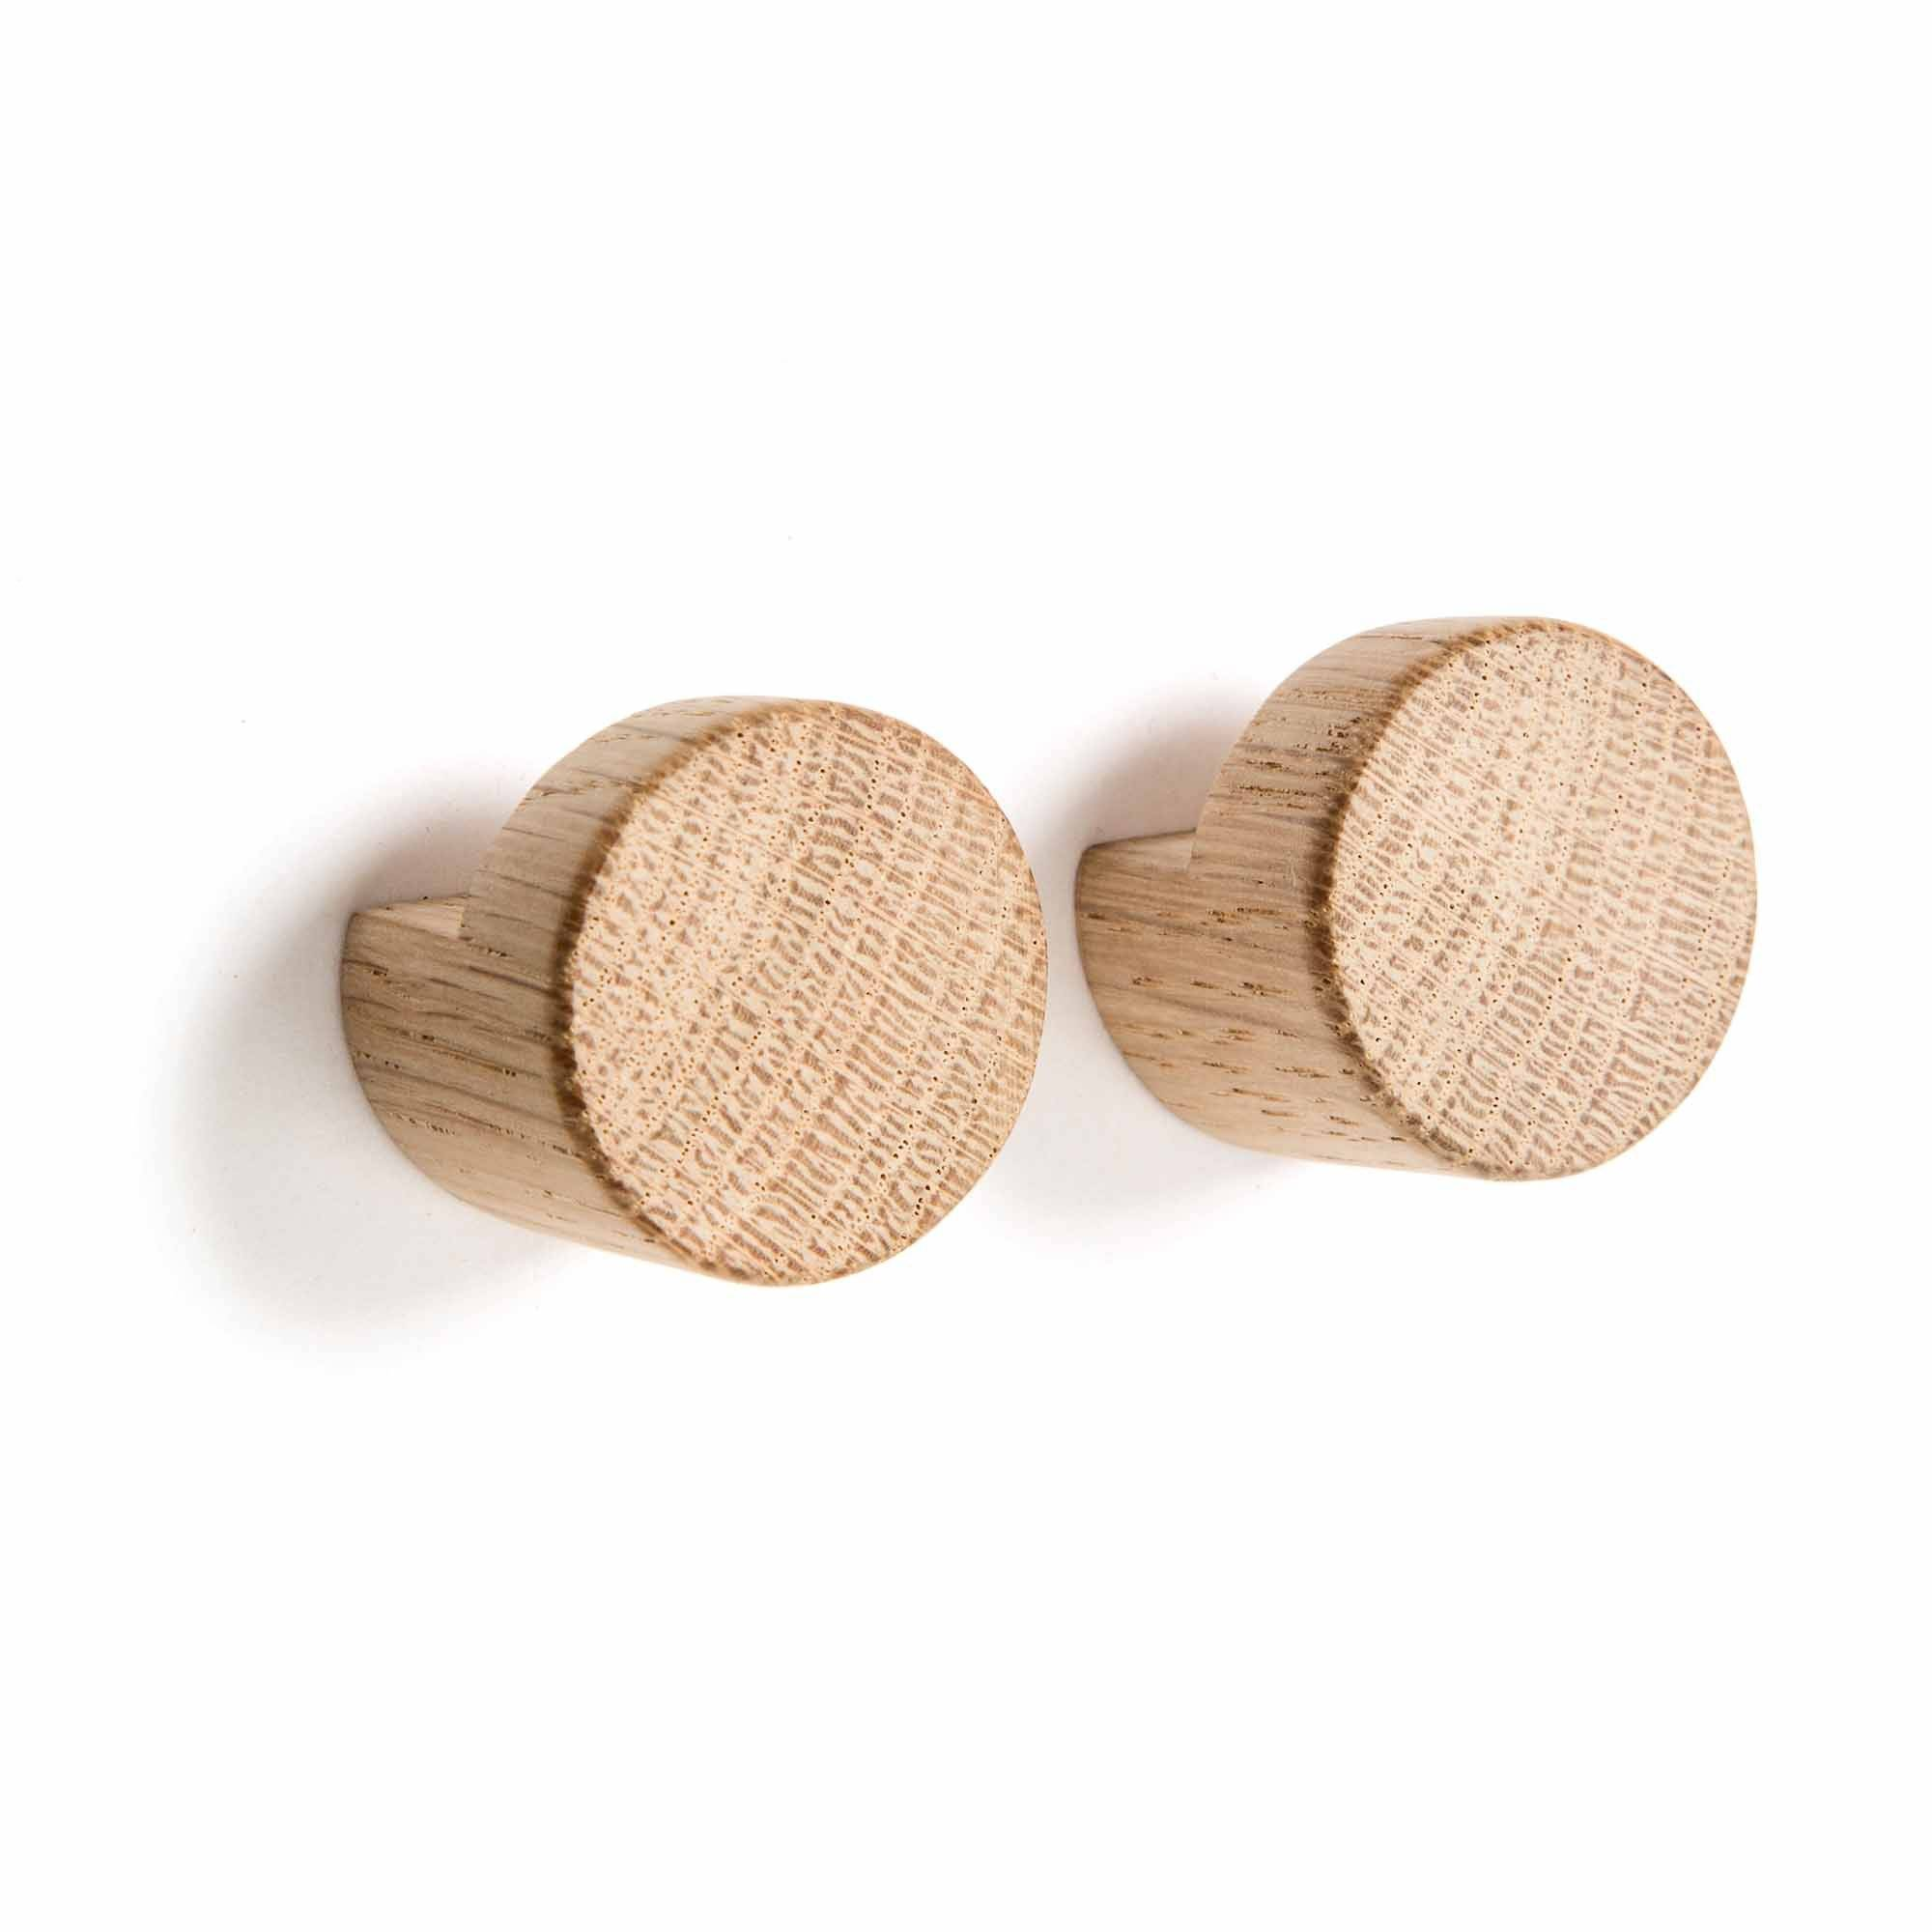 By Wirth - Wood Knot 2 pack - Nature (WKS 061)